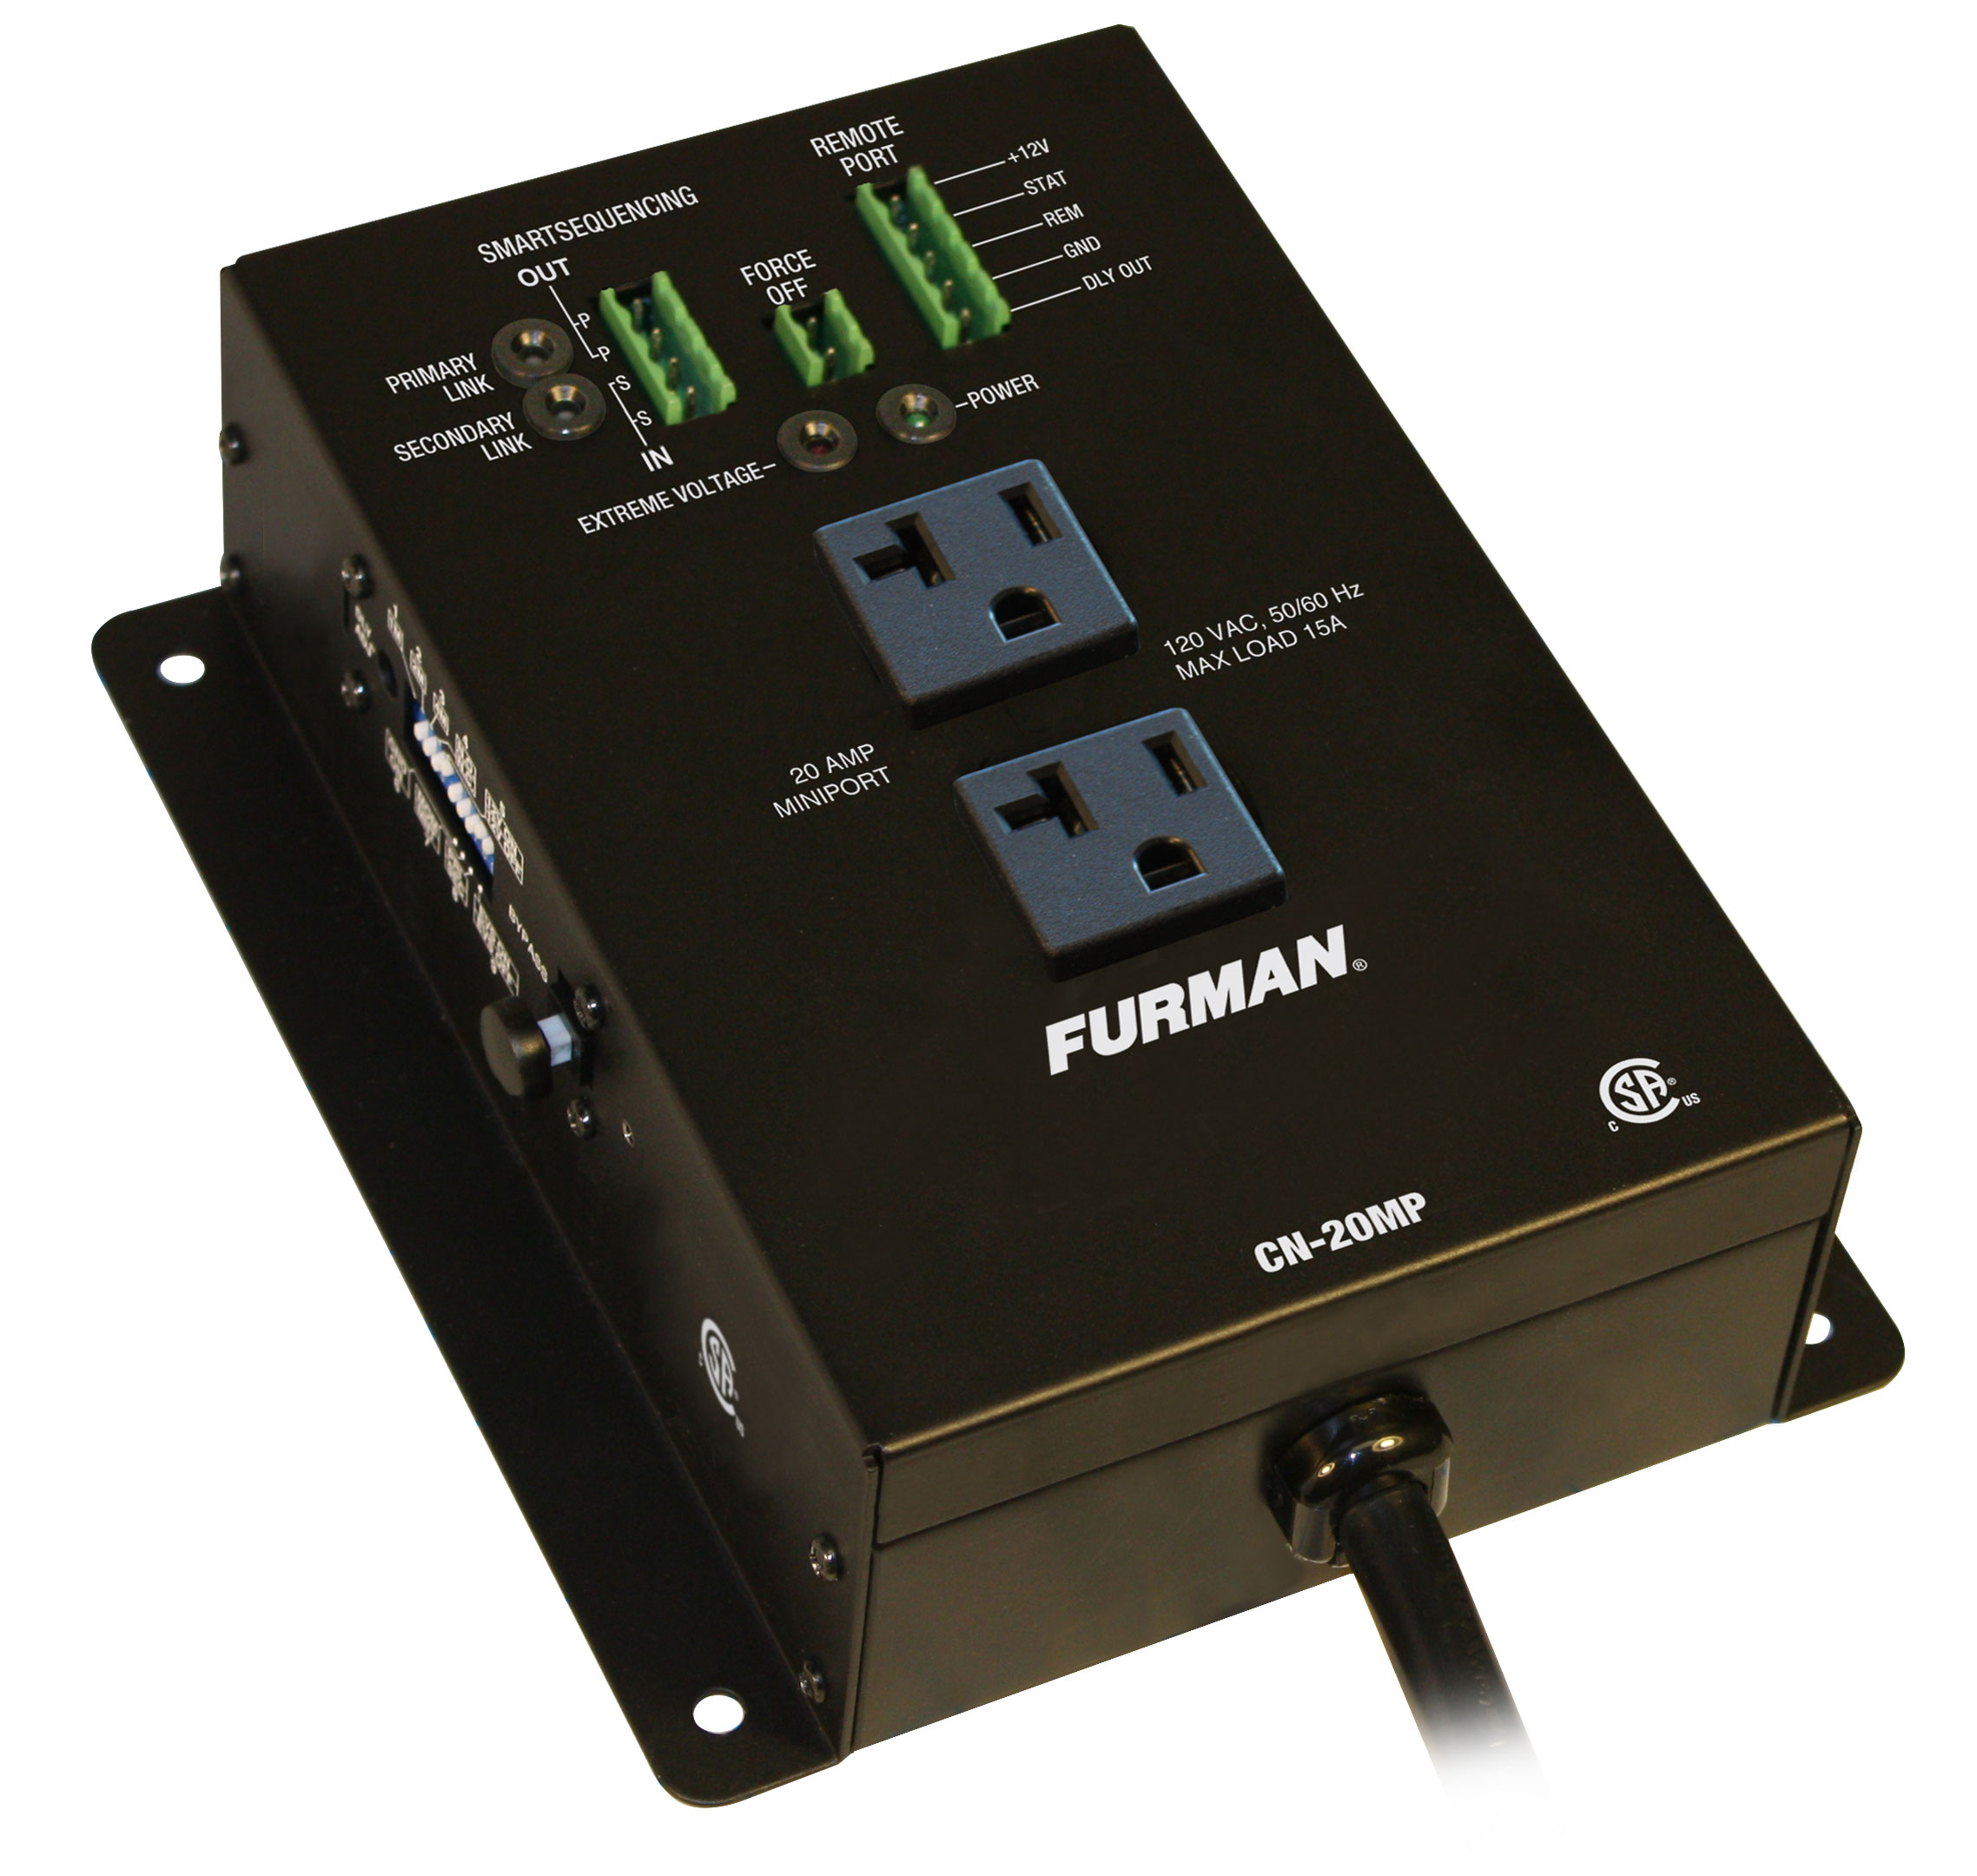 Furman 20 Amp MiniPort